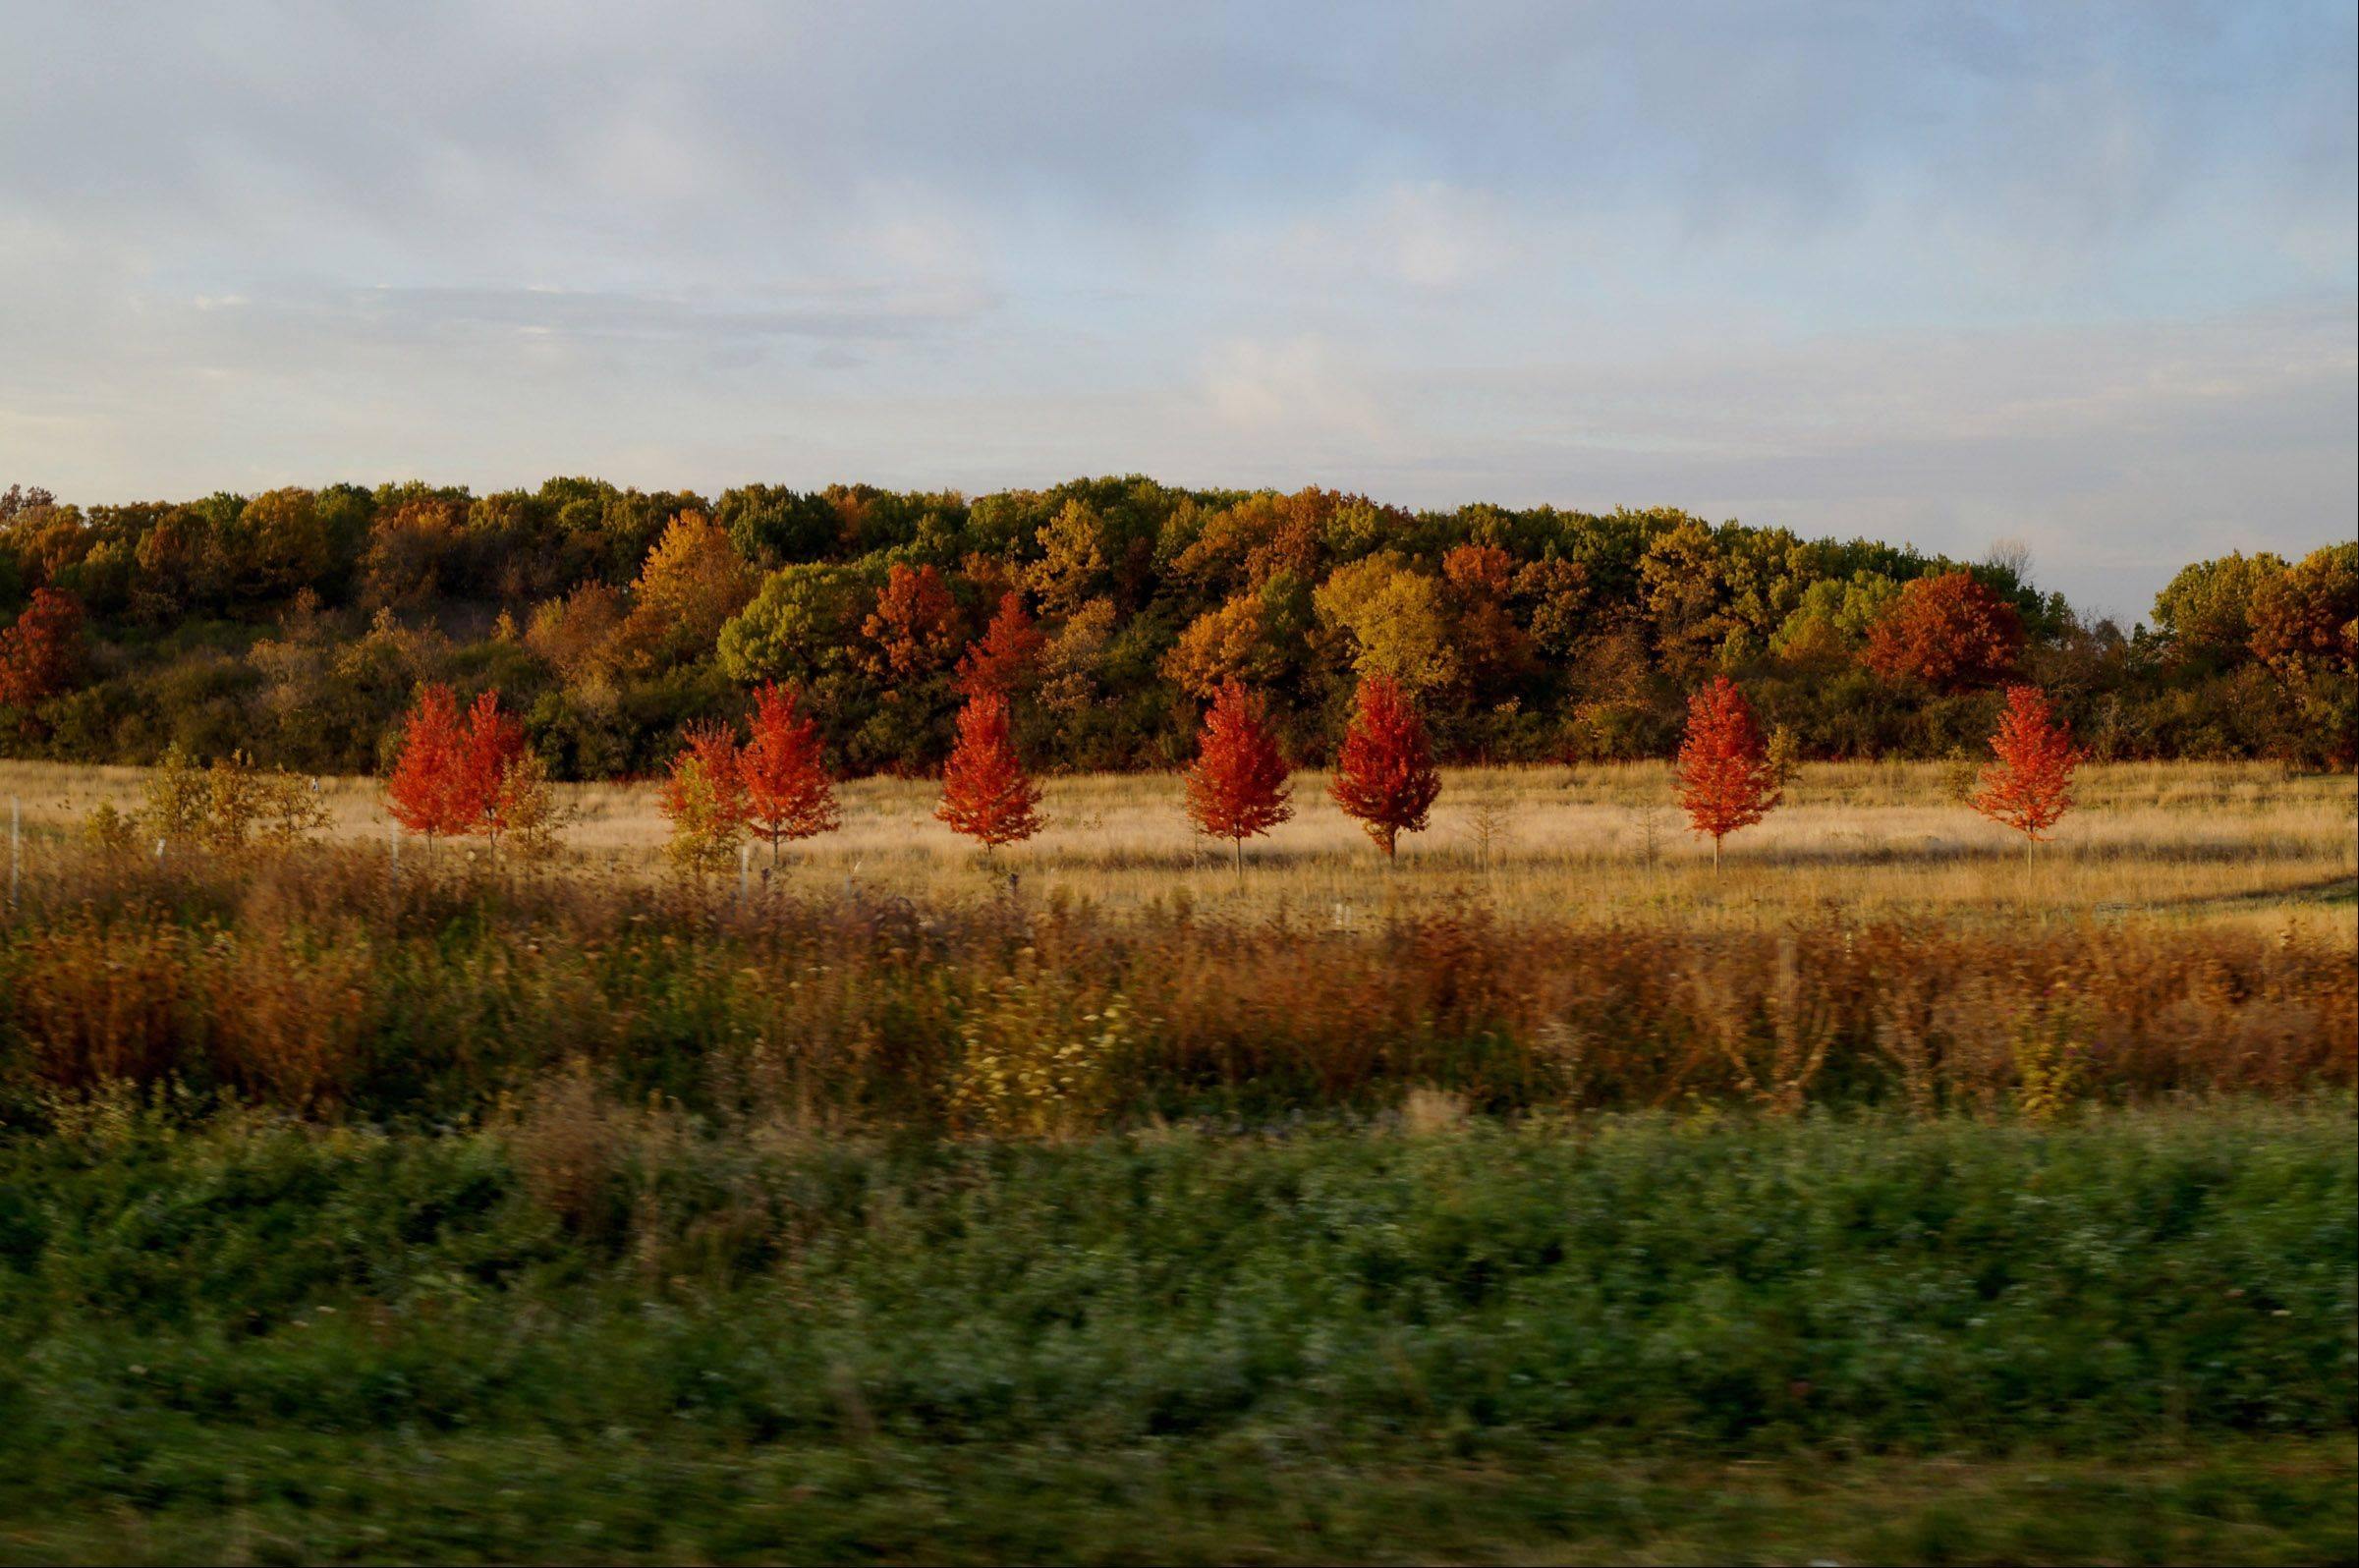 Trees have made a color transition in a McHenry forest preserve on Halloween.